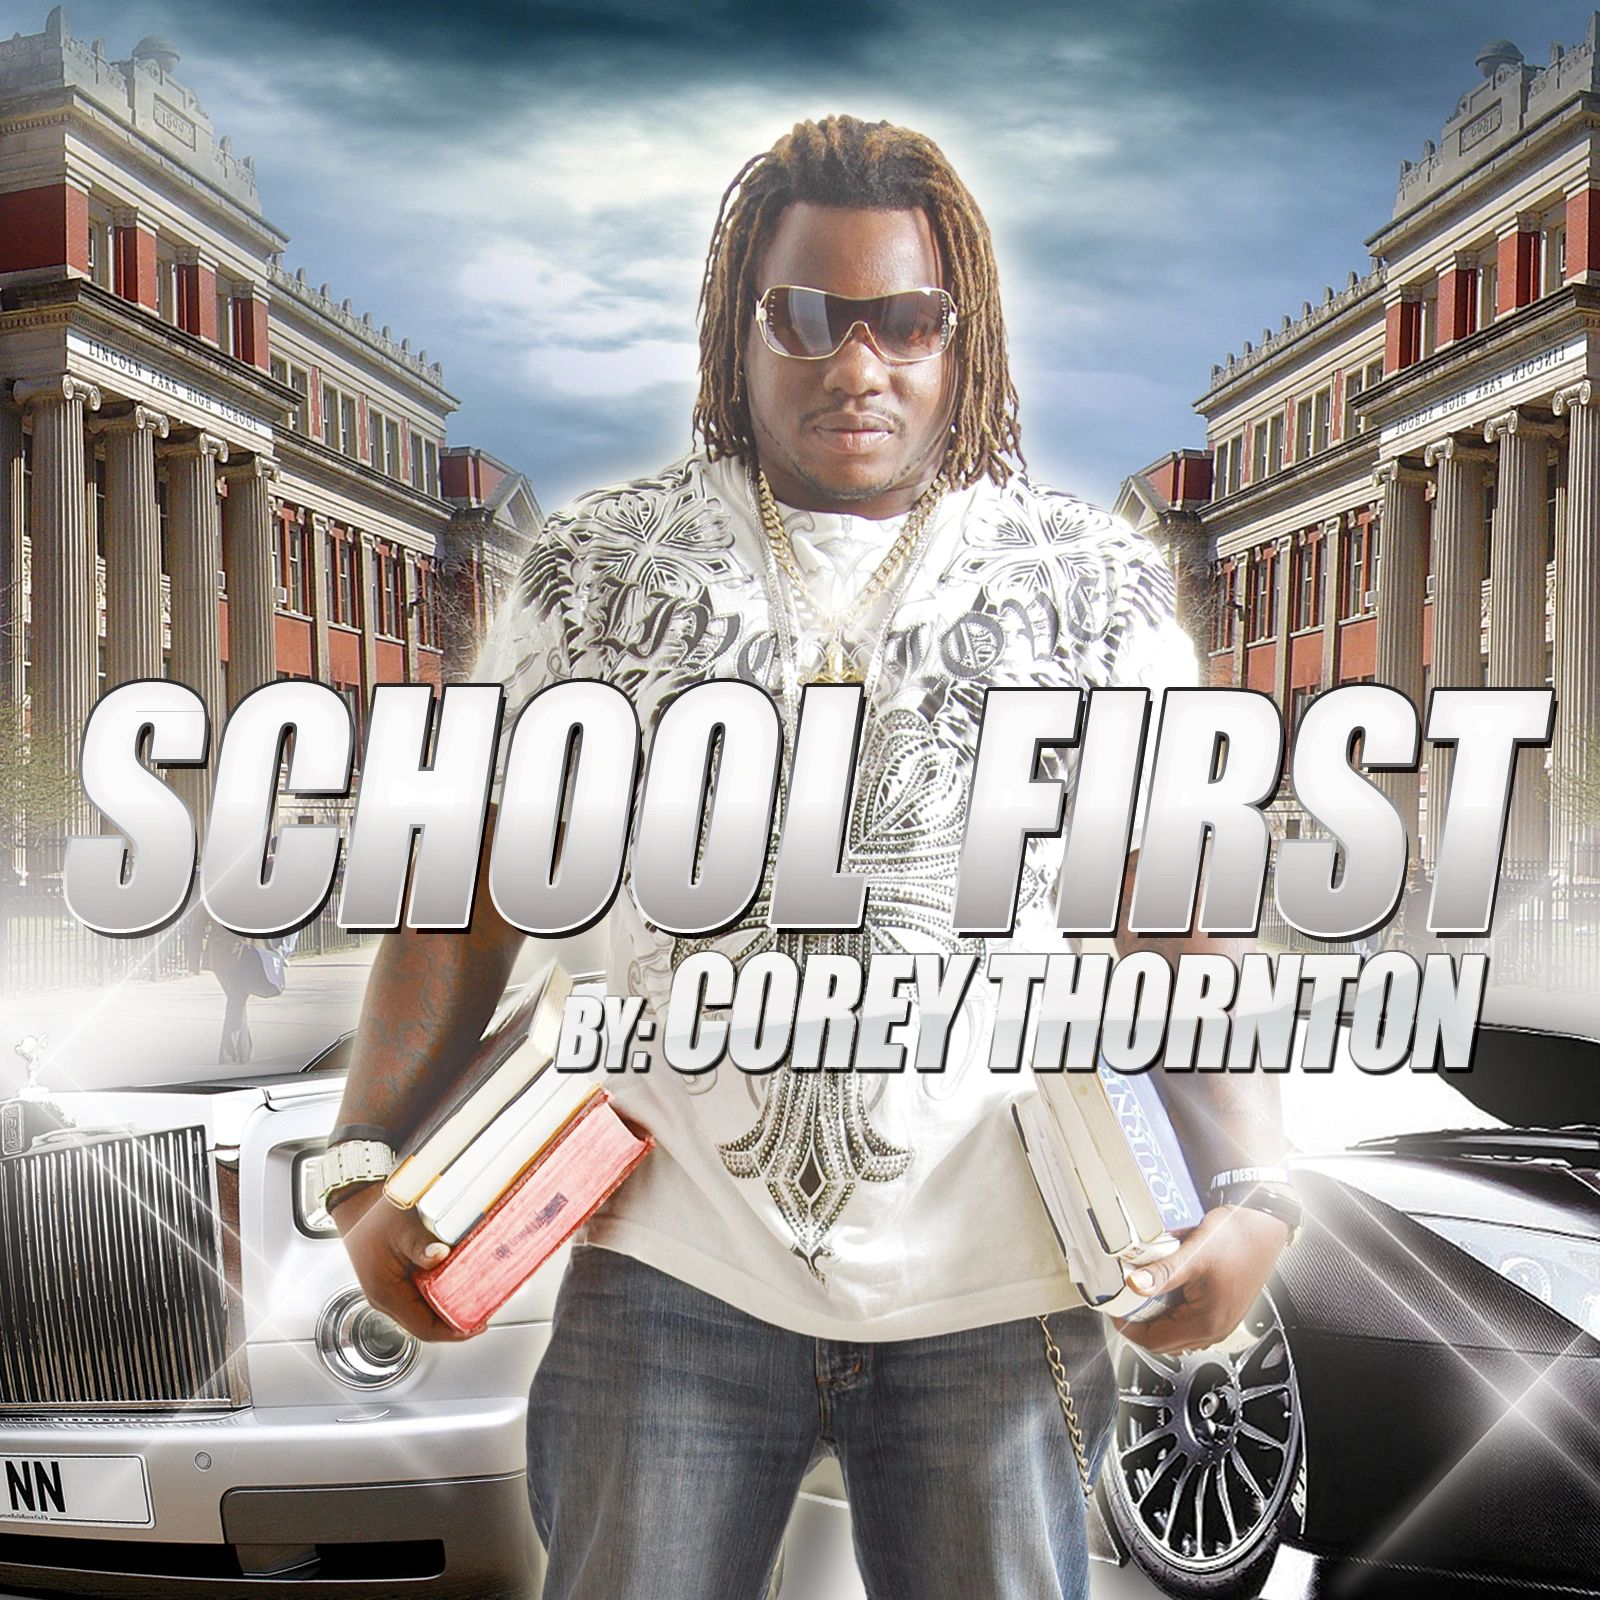 Corey Thornton School First Album available on iTunes.